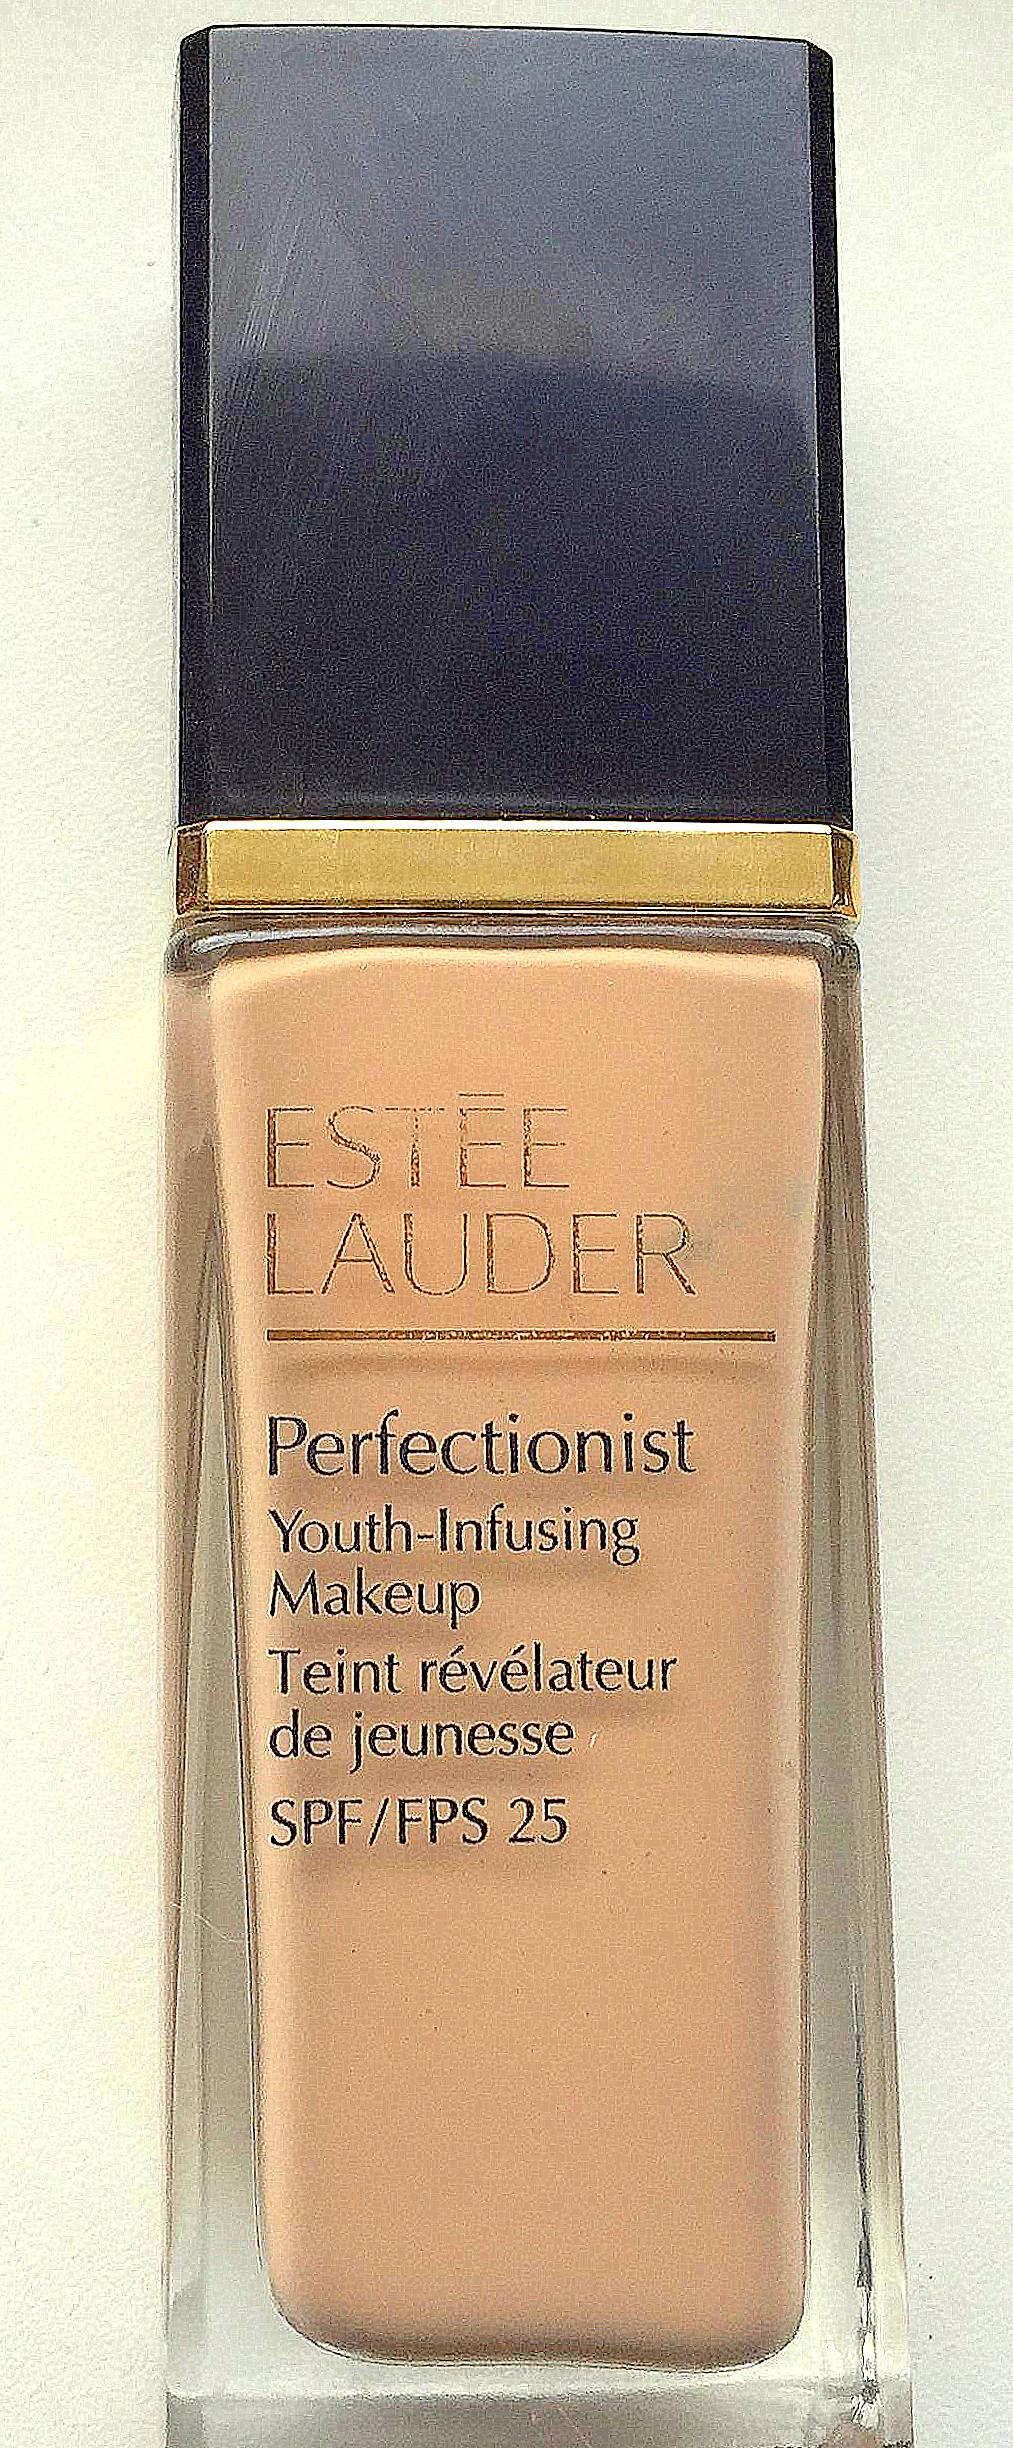 ESTÉE LAUDER Perfectionist Youth-Infusing Make up - Highendlove